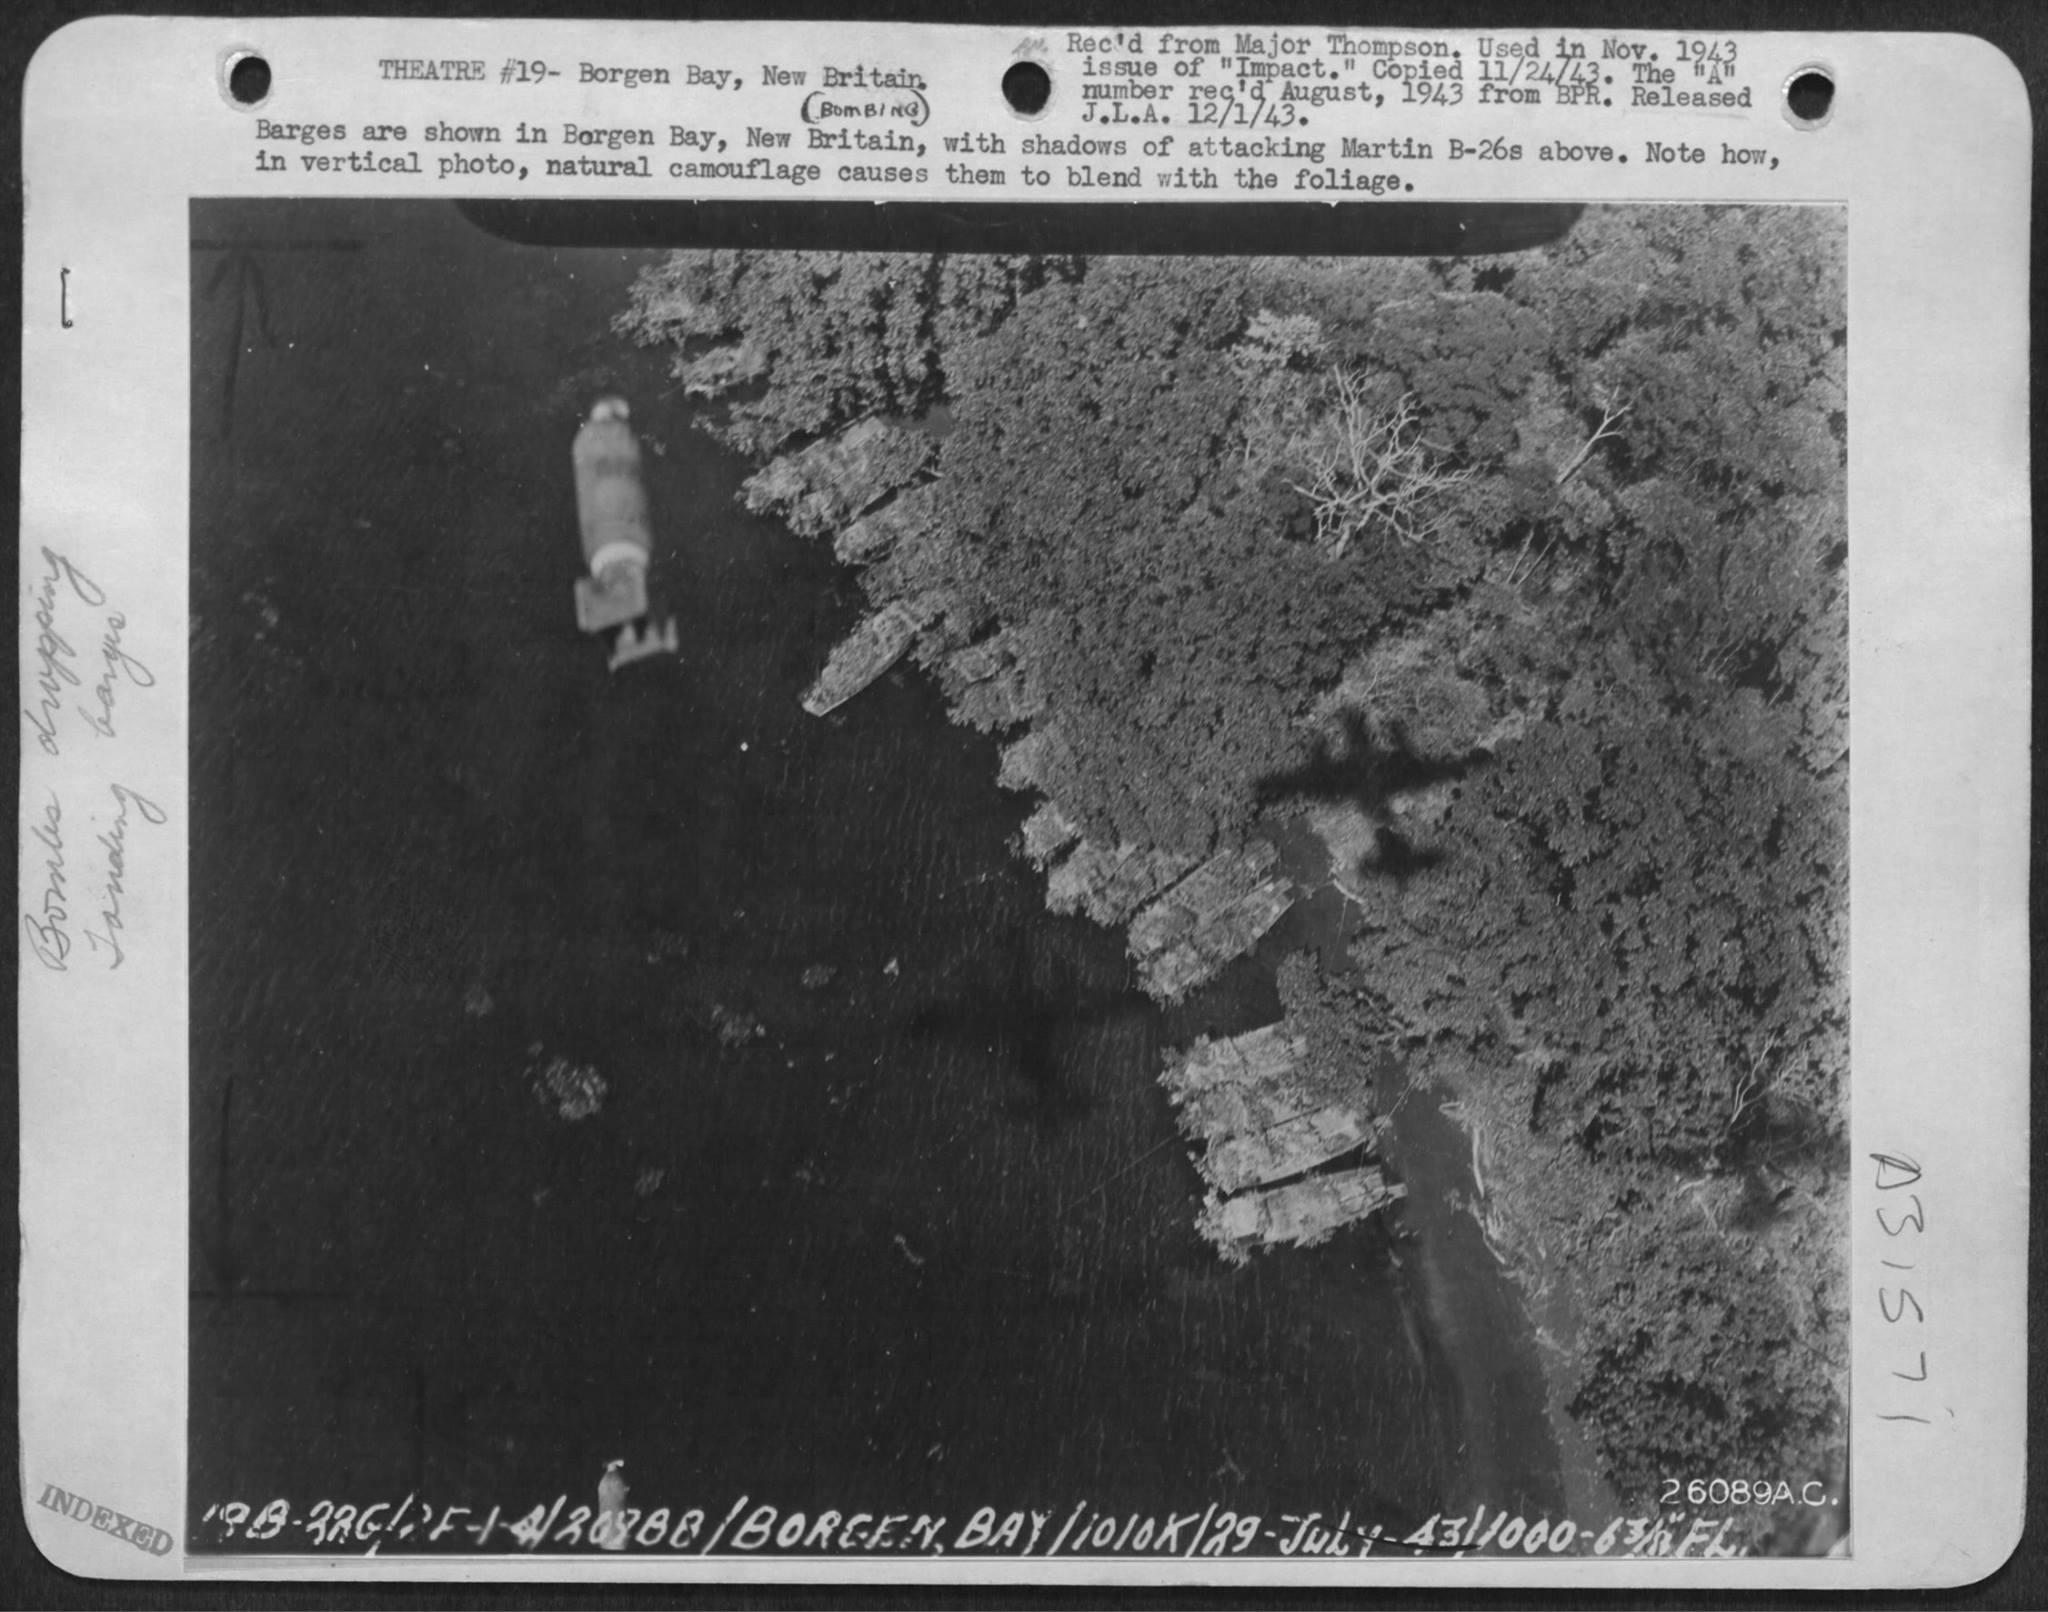 USAAF B 26B Marauder 5AF bombing Barges in Borgen Bay New Britain note shadows of attacking USAAF B 26s above Nov 1943 01